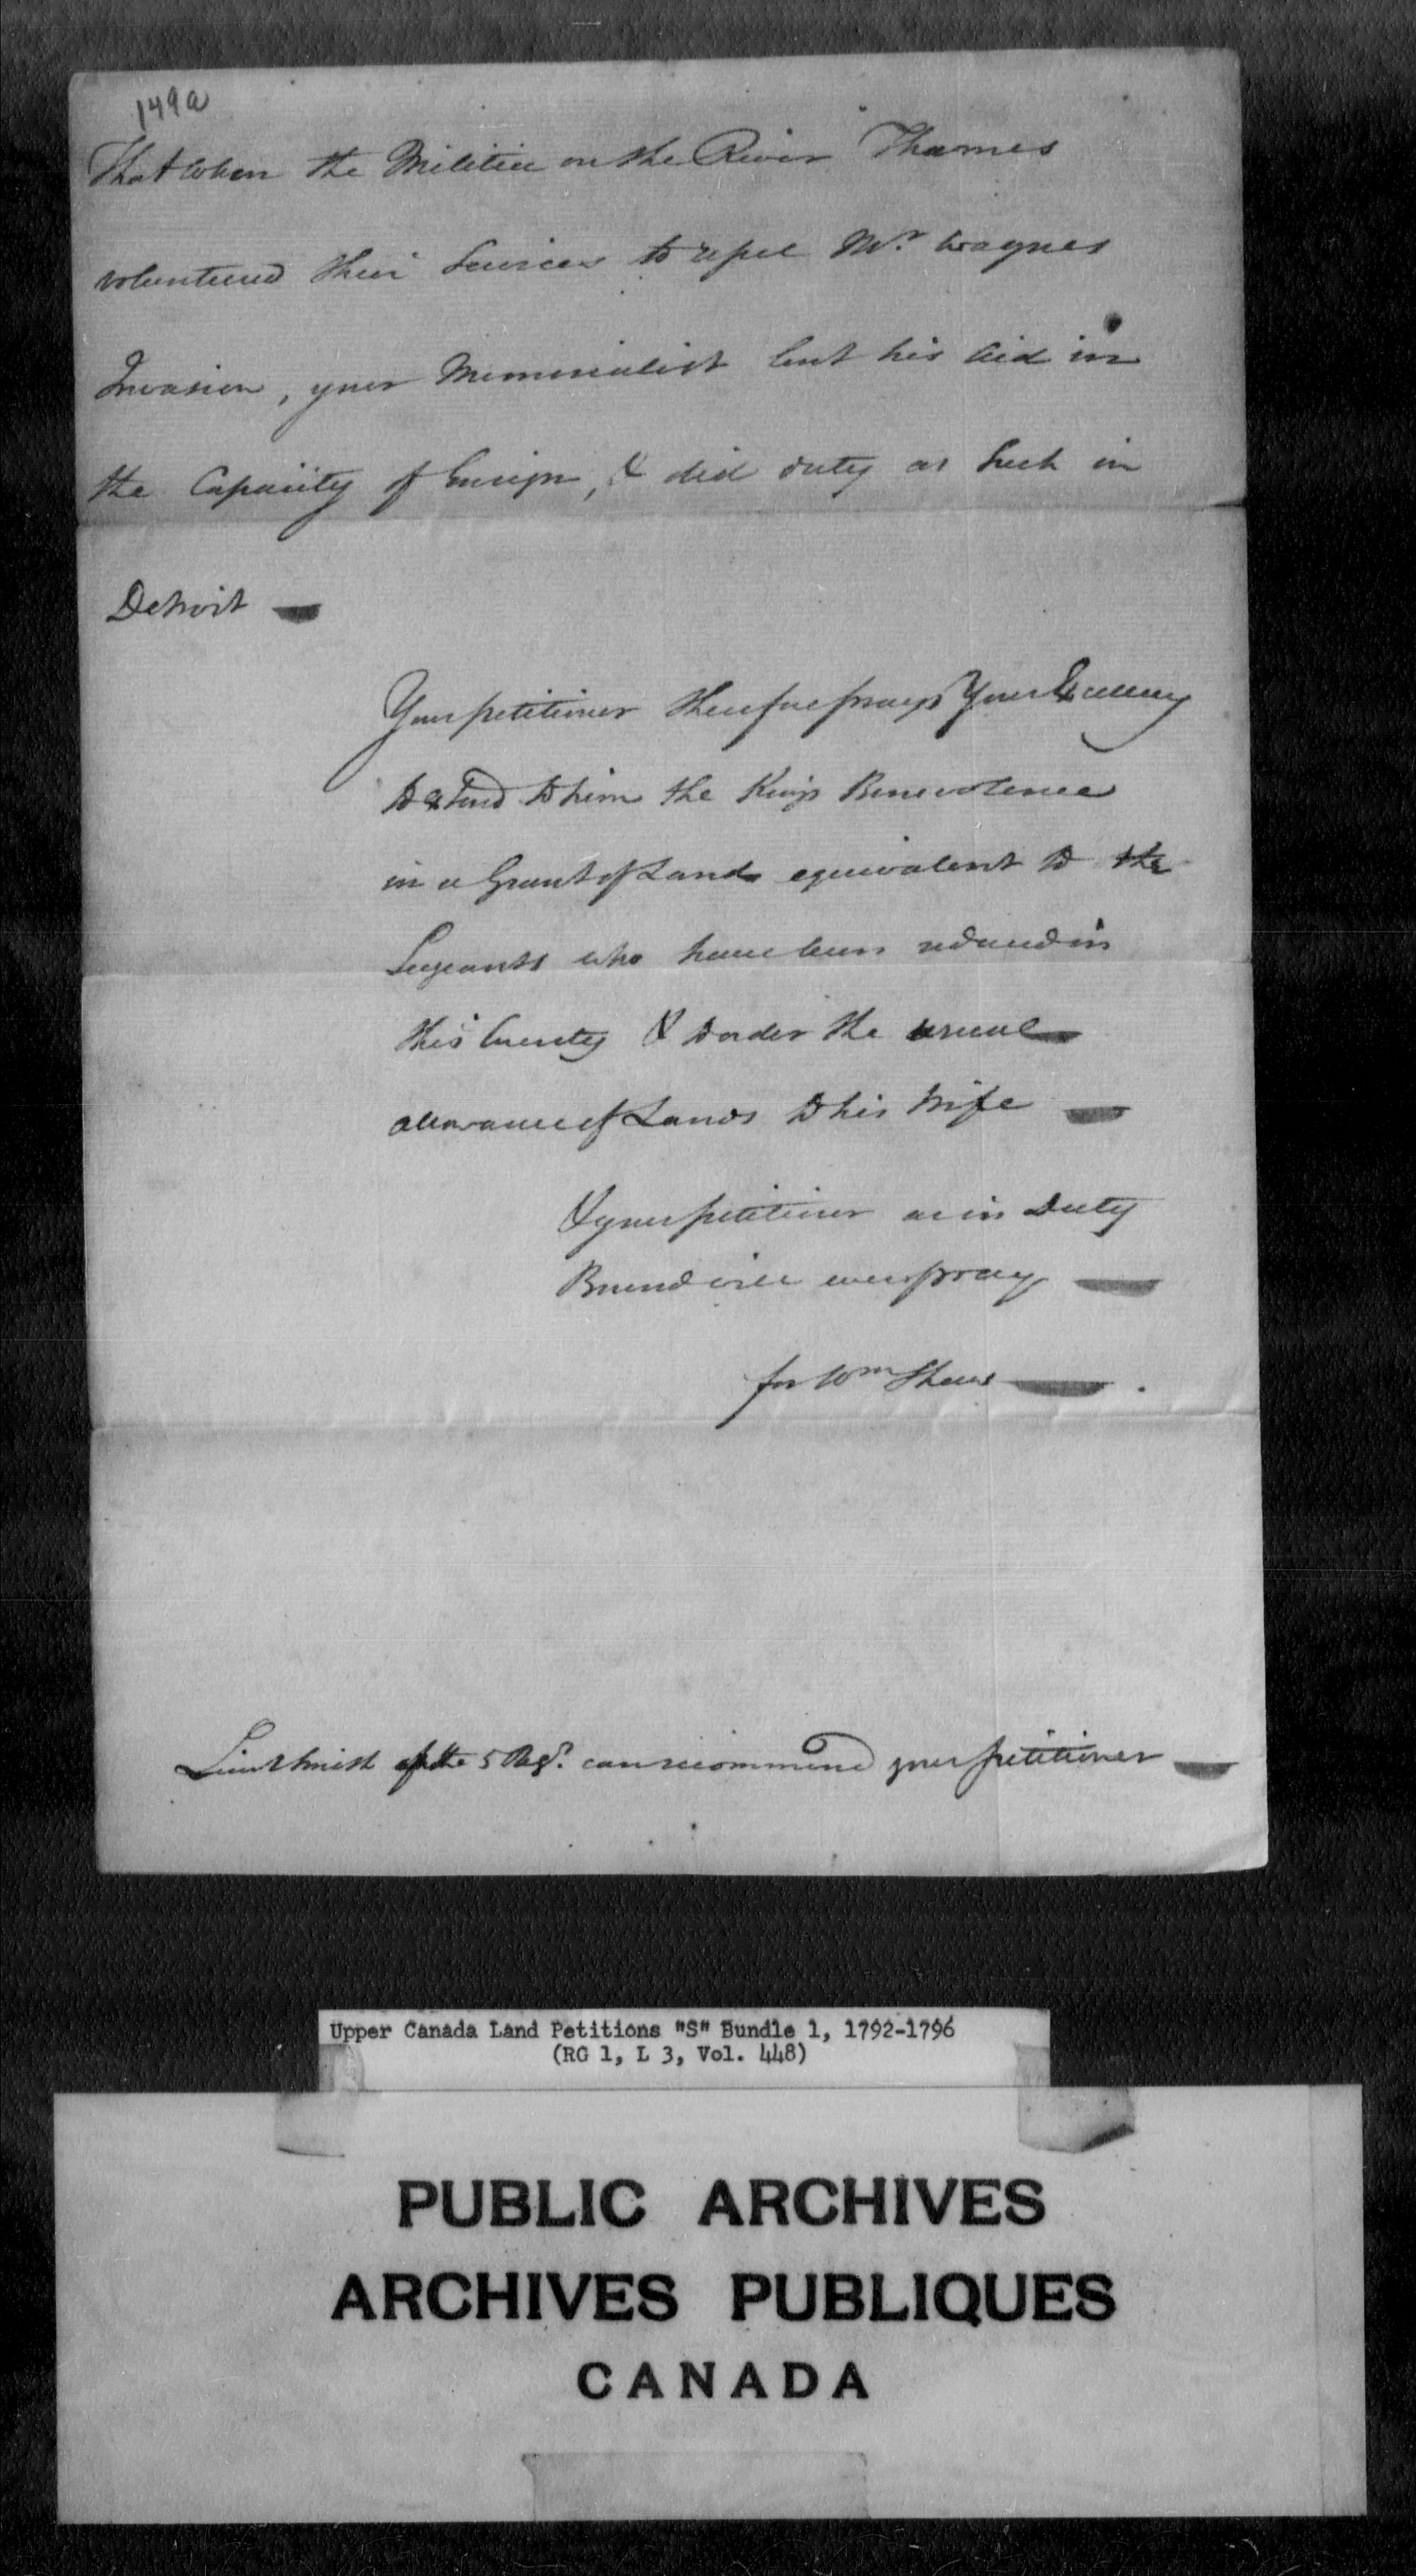 Title: Upper Canada Land Petitions (1763-1865) - Mikan Number: 205131 - Microform: c-2806